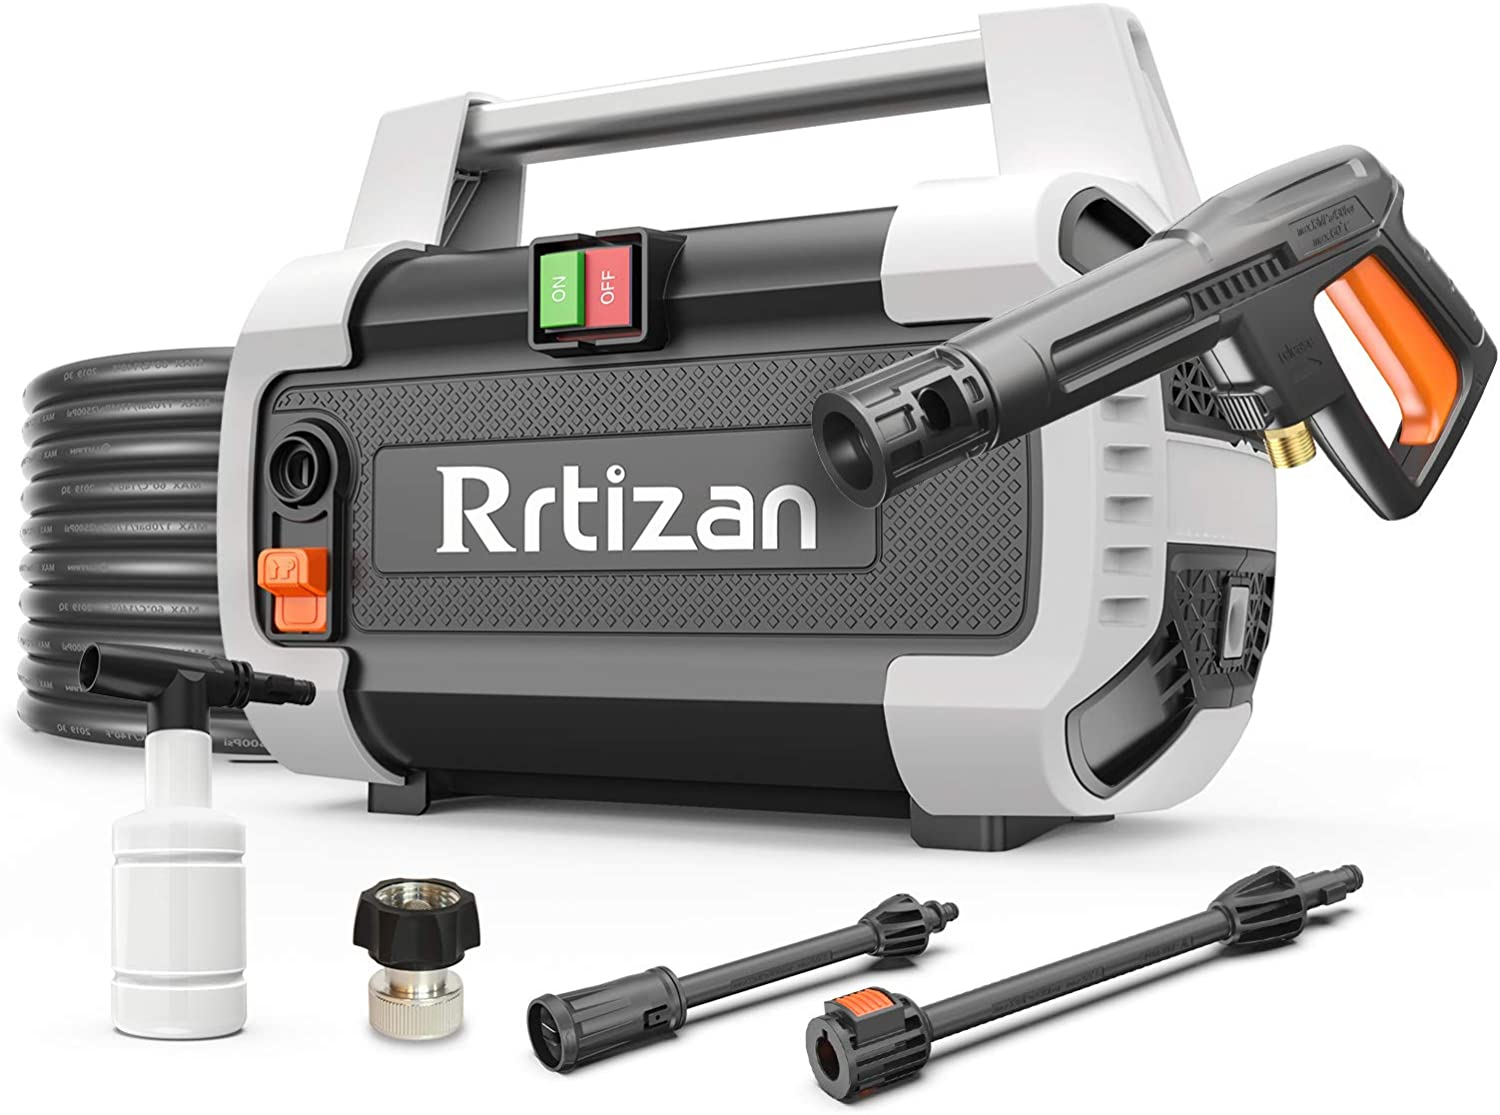 Rrtizan Colorado Springs Mall Electric Pressure Washer 1800W Machi Cleaner Sales for sale High Power